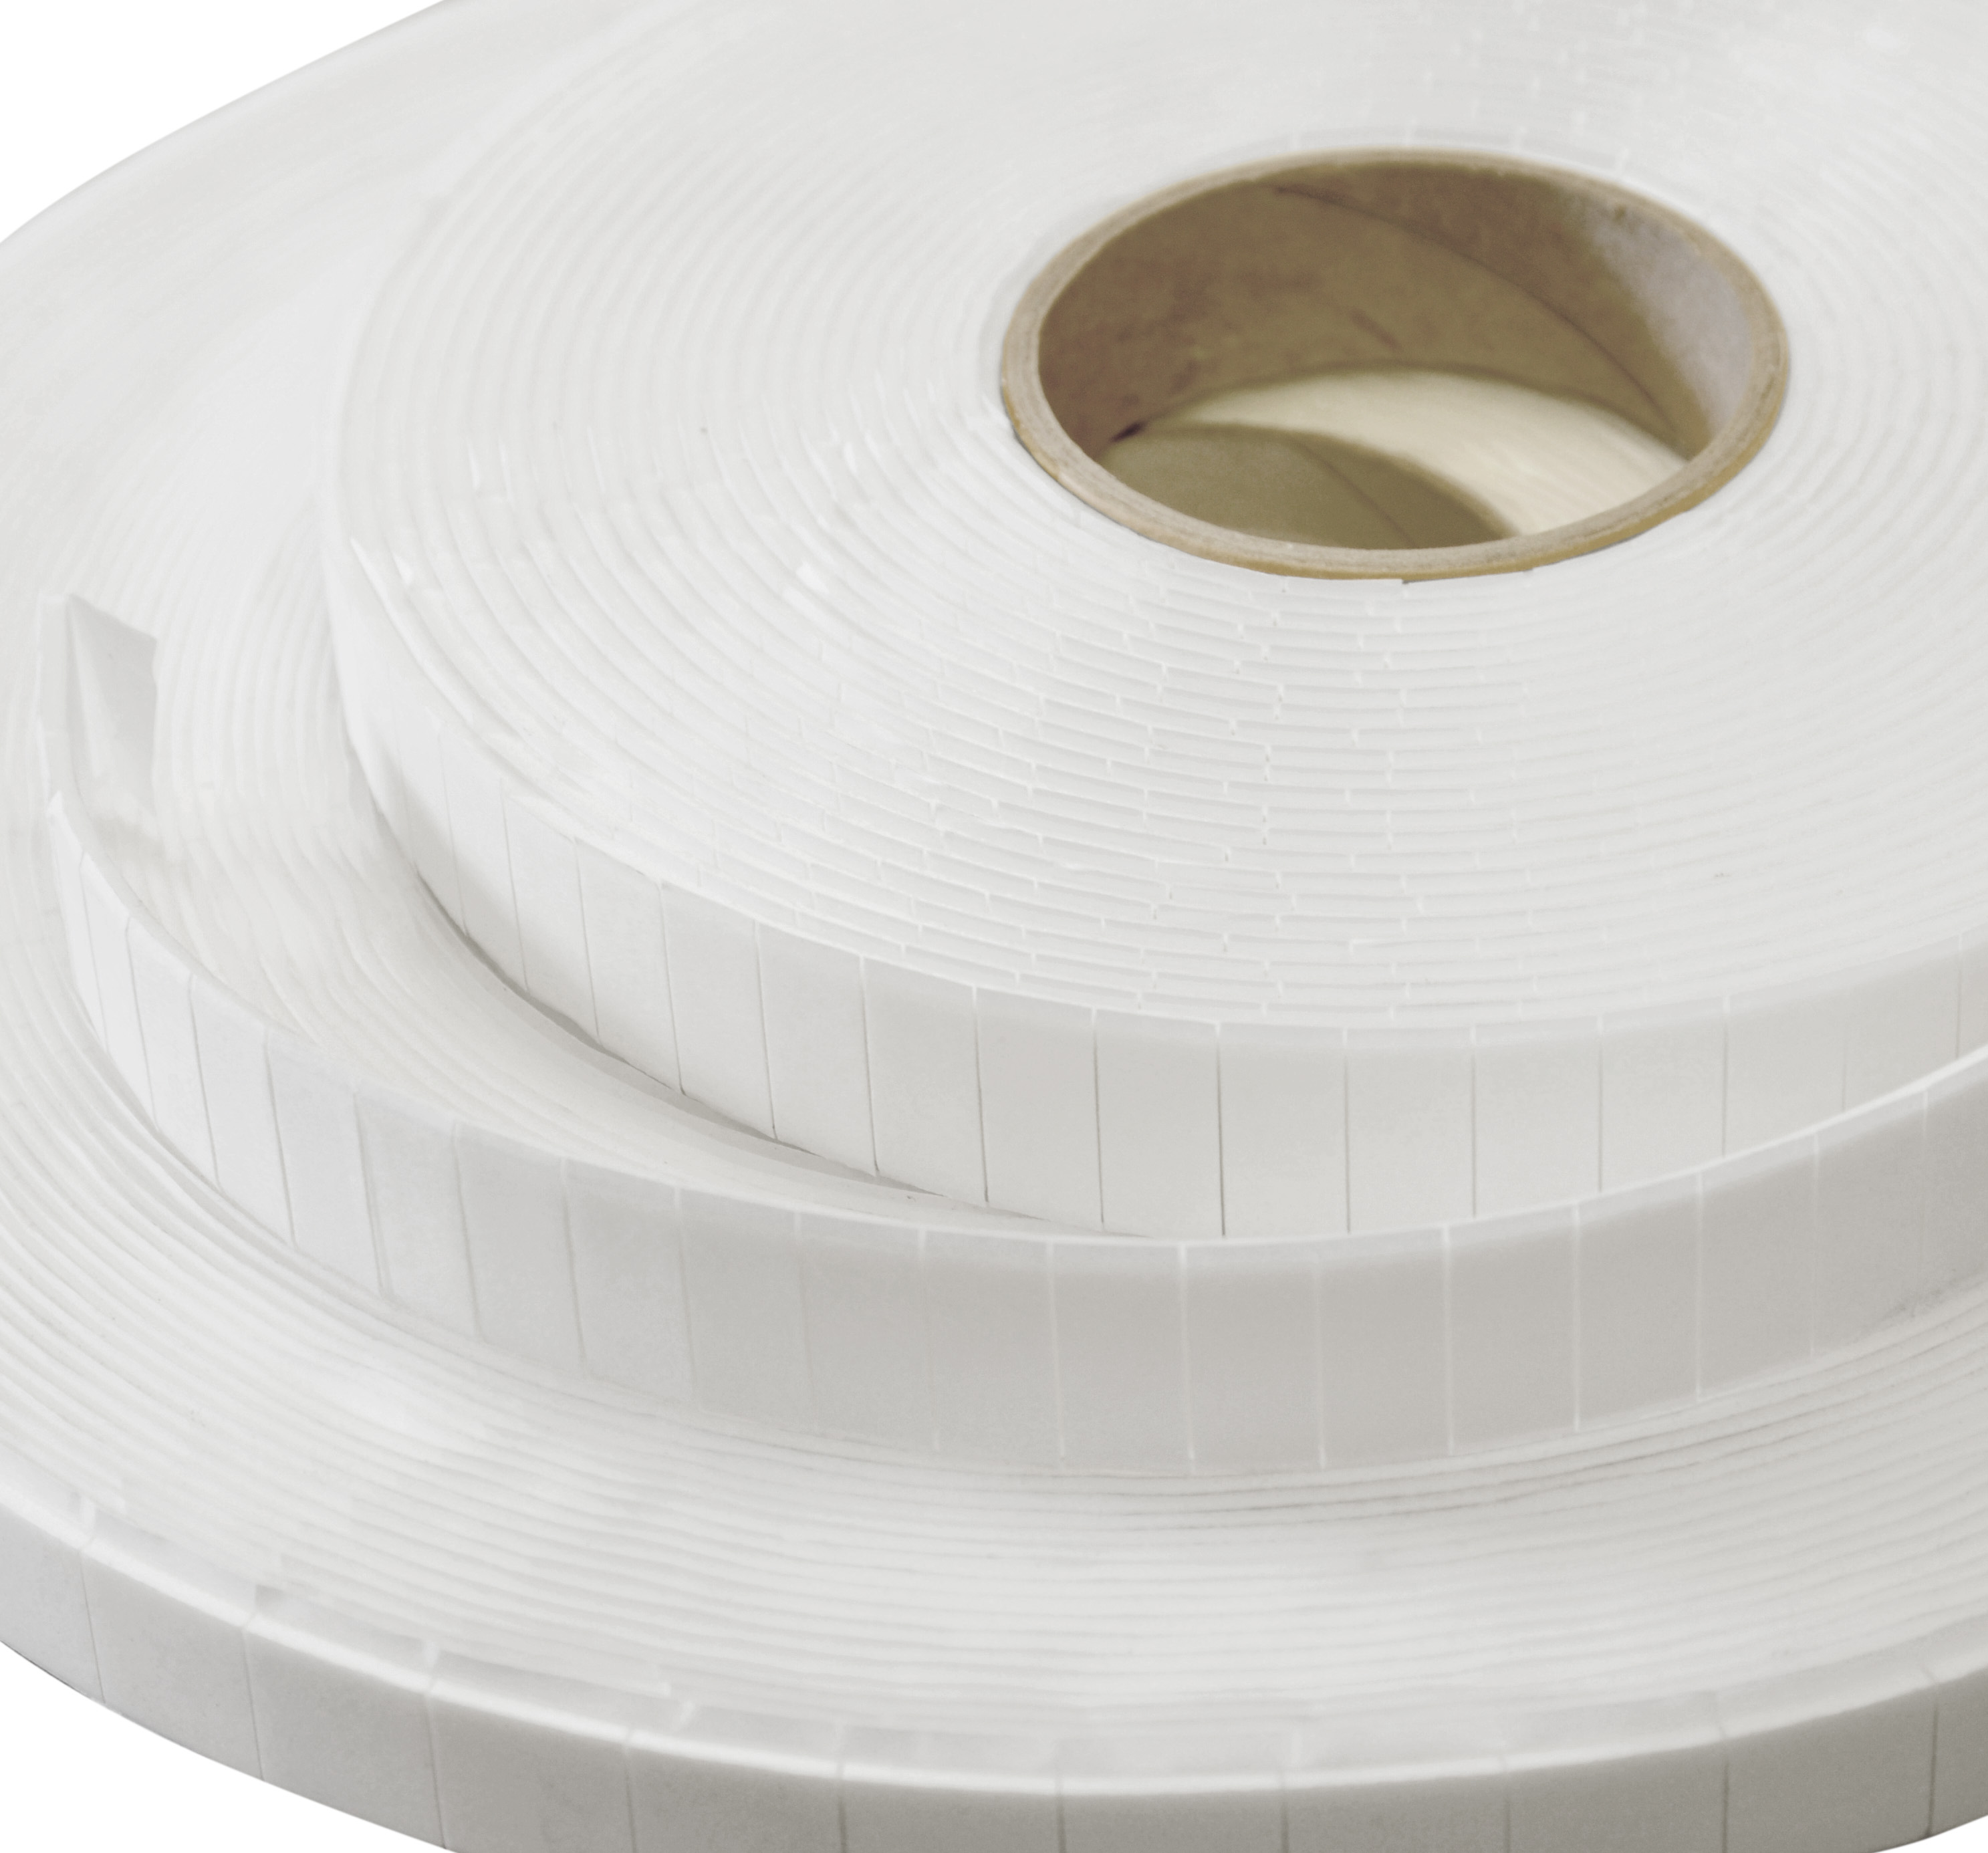 White Adhesive Foam Pads Double Sided 20mm x 20mm